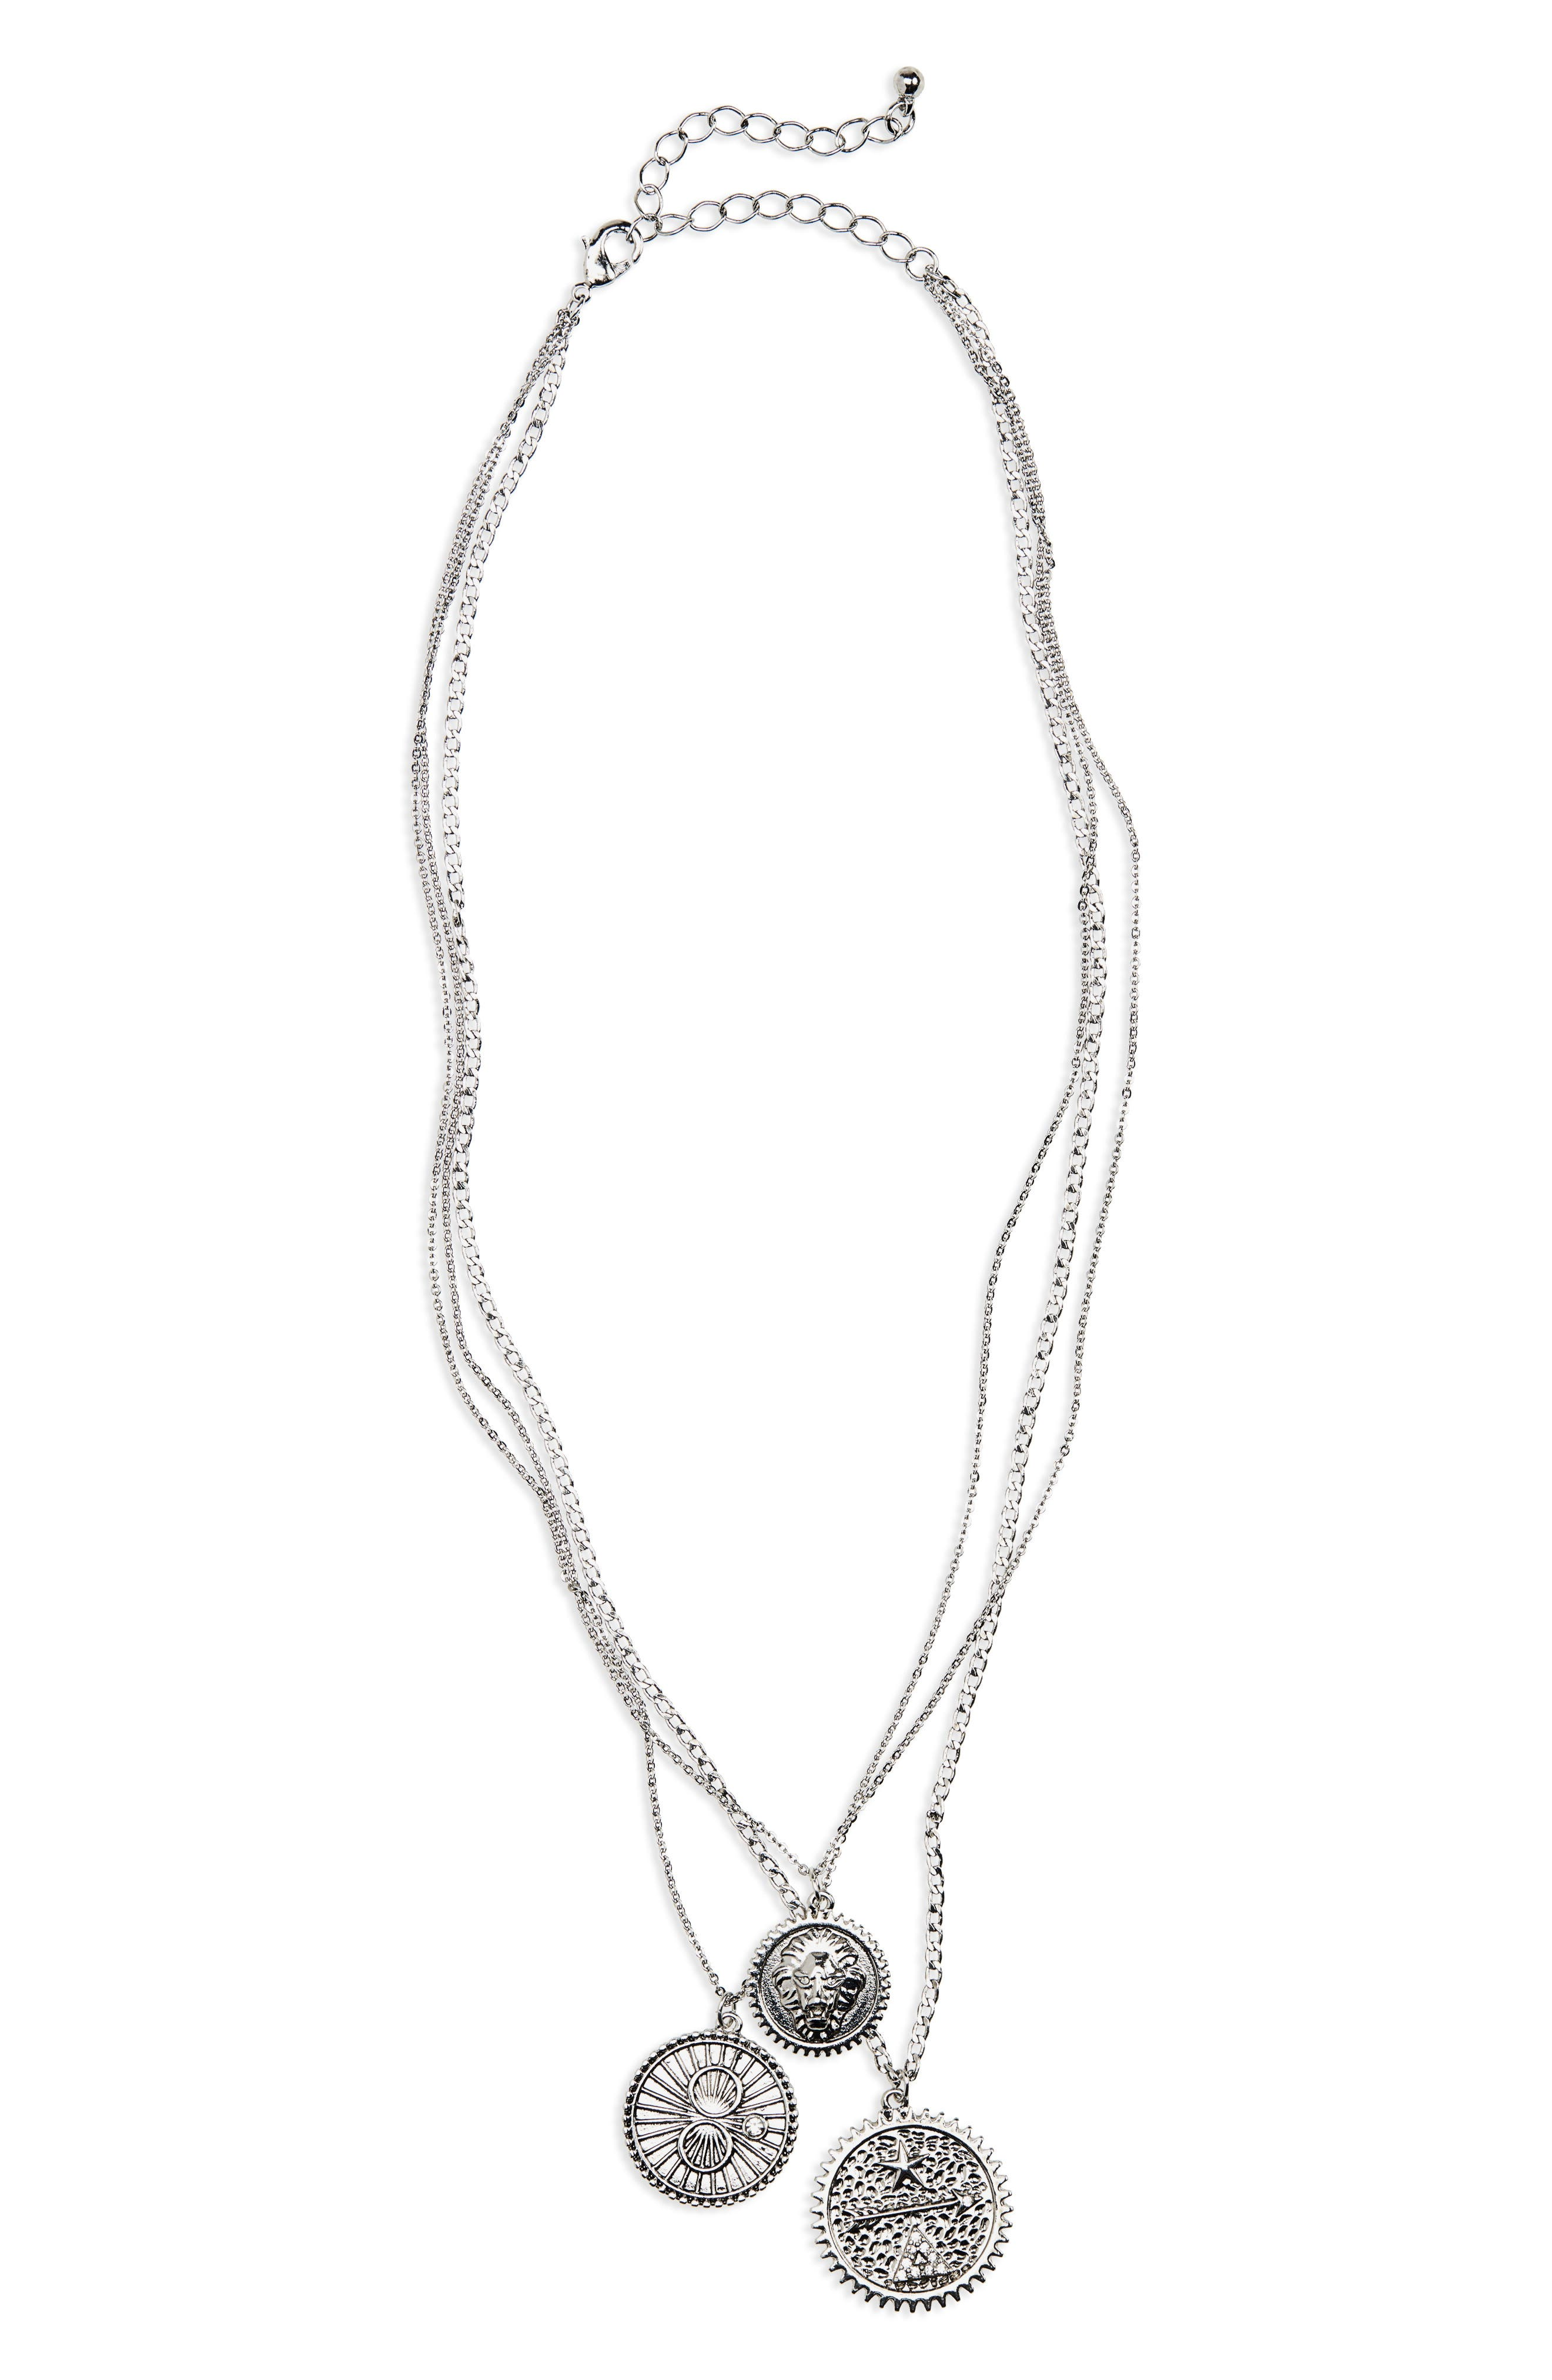 Layered Pendant Necklace,                         Main,                         color, SILVER/ CRYSTAL